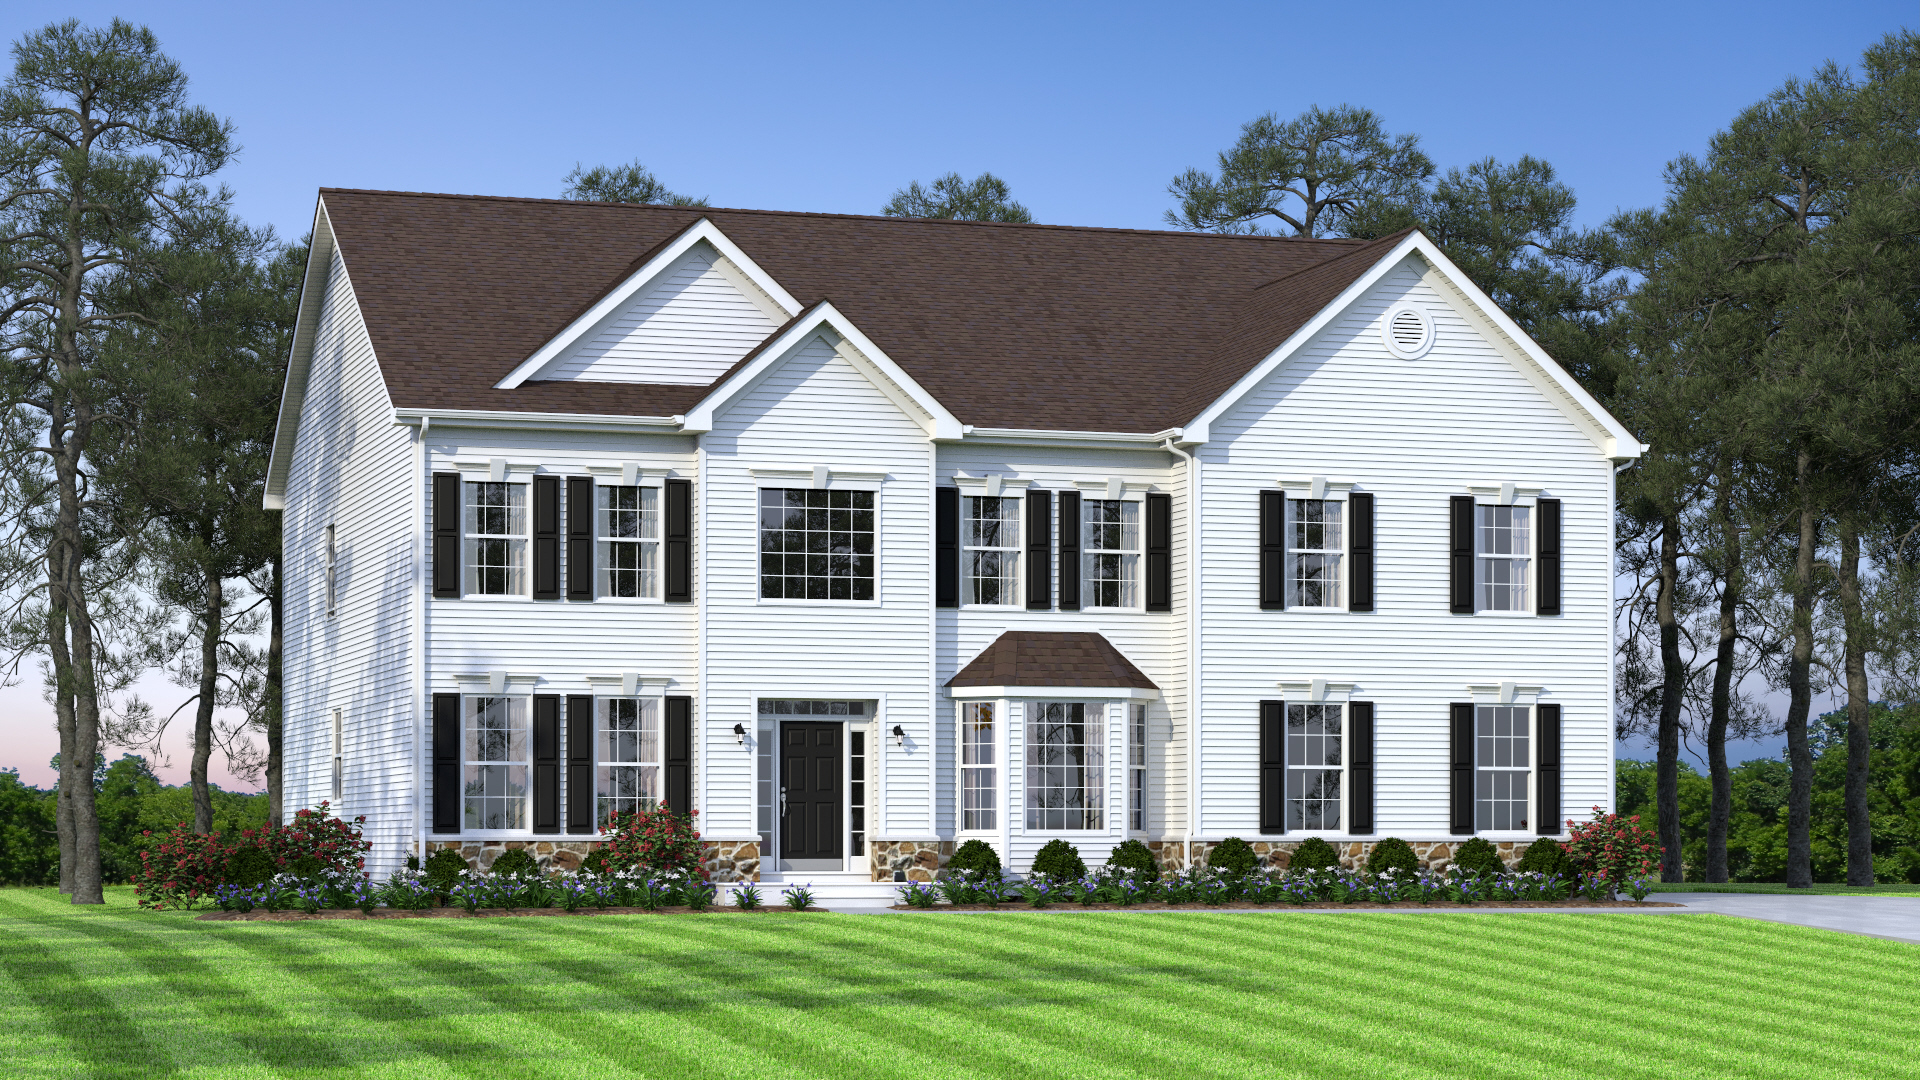 The Brandywine  3,700 sf / 4 br / 2.5 ba / 2 car garage Starting at $482,990